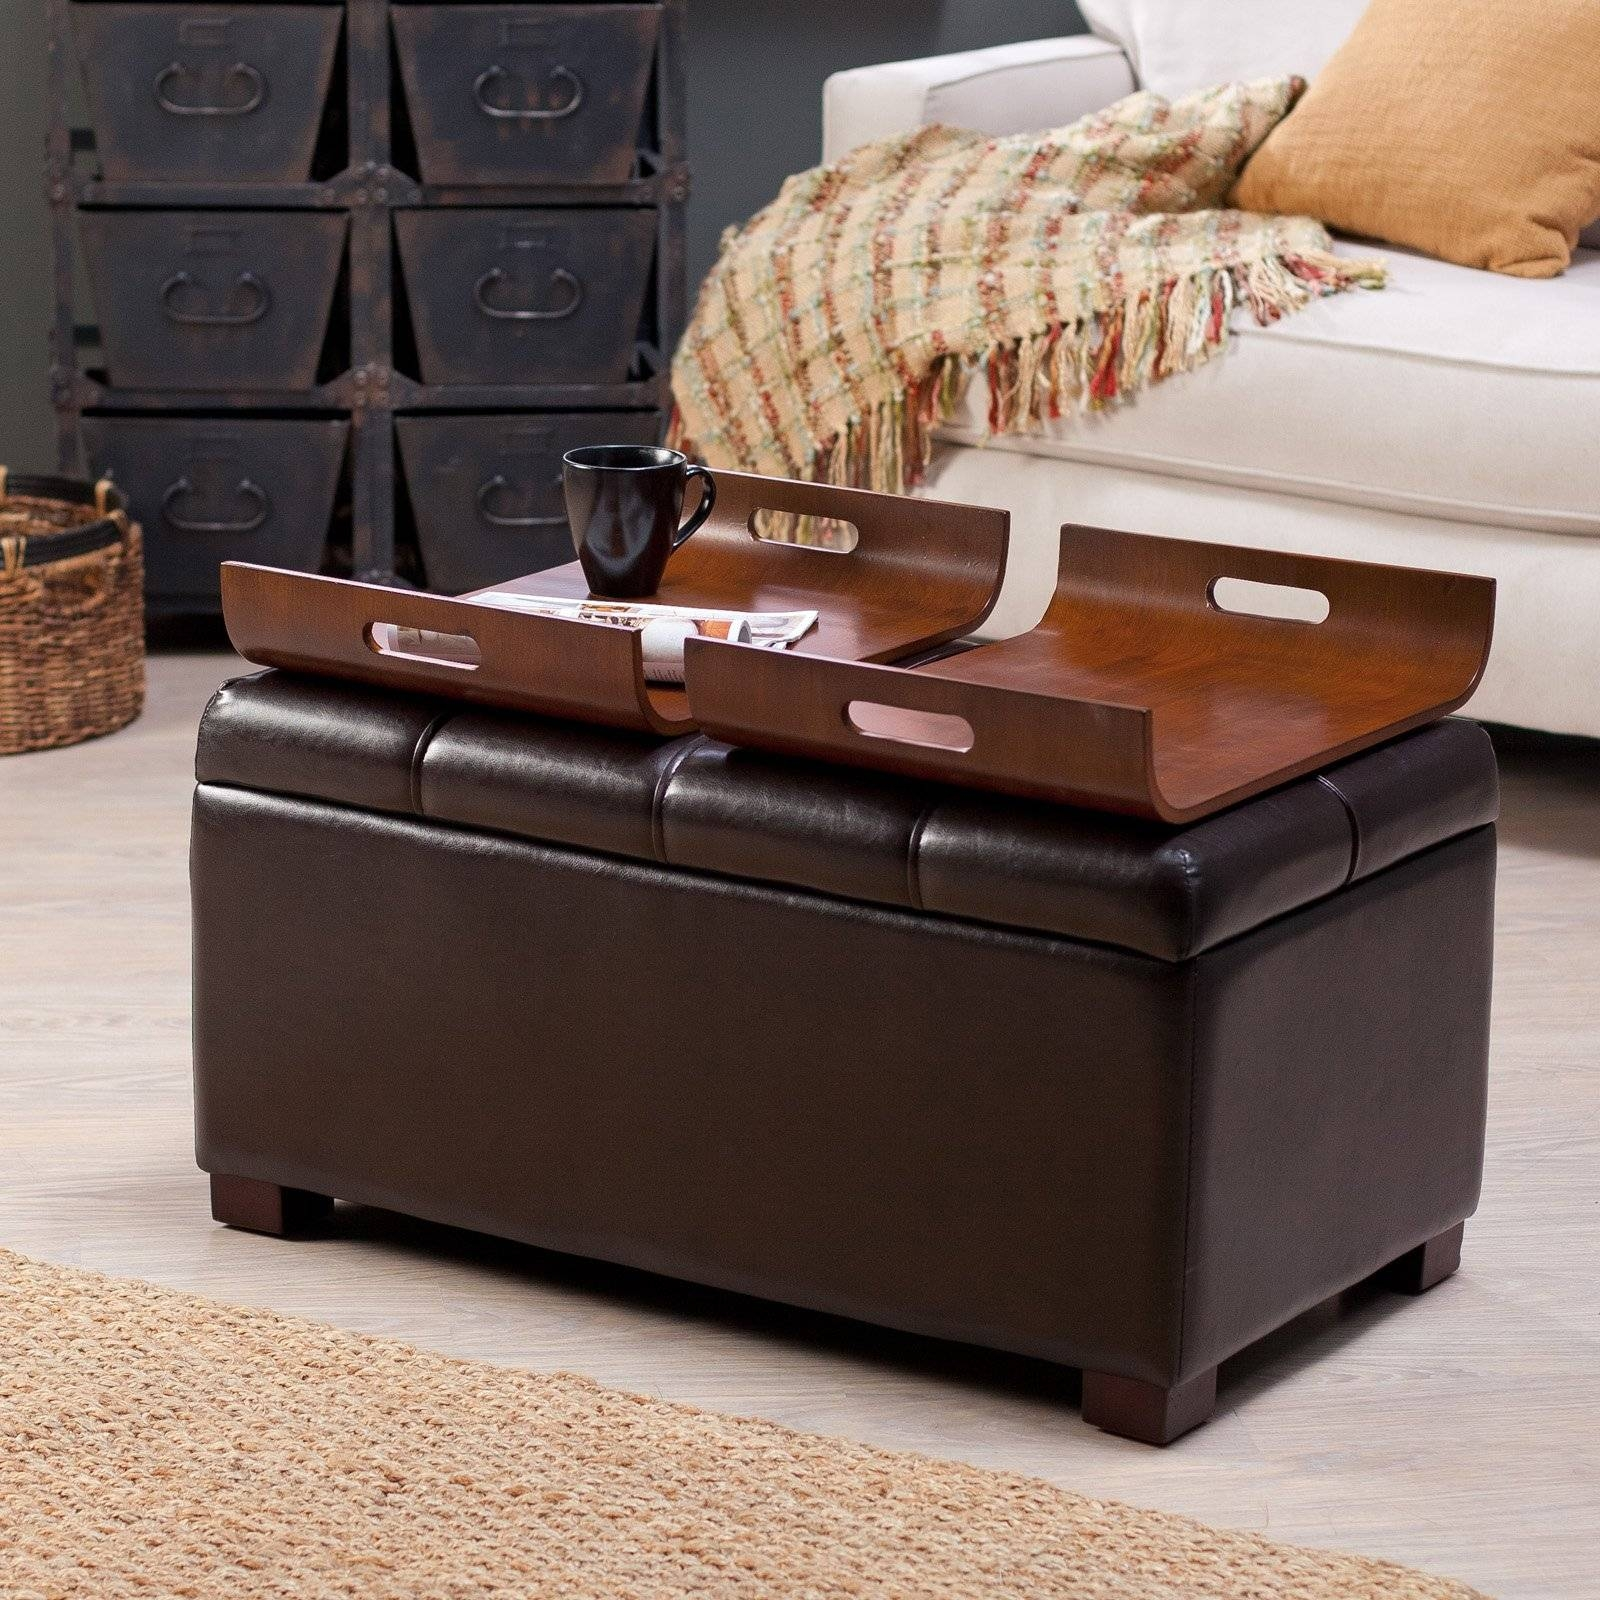 Brown Leather Ottoman Coffee Table With Storage | Coffee Tables intended for Brown Leather Ottoman Coffee Tables With Storages (Image 11 of 30)